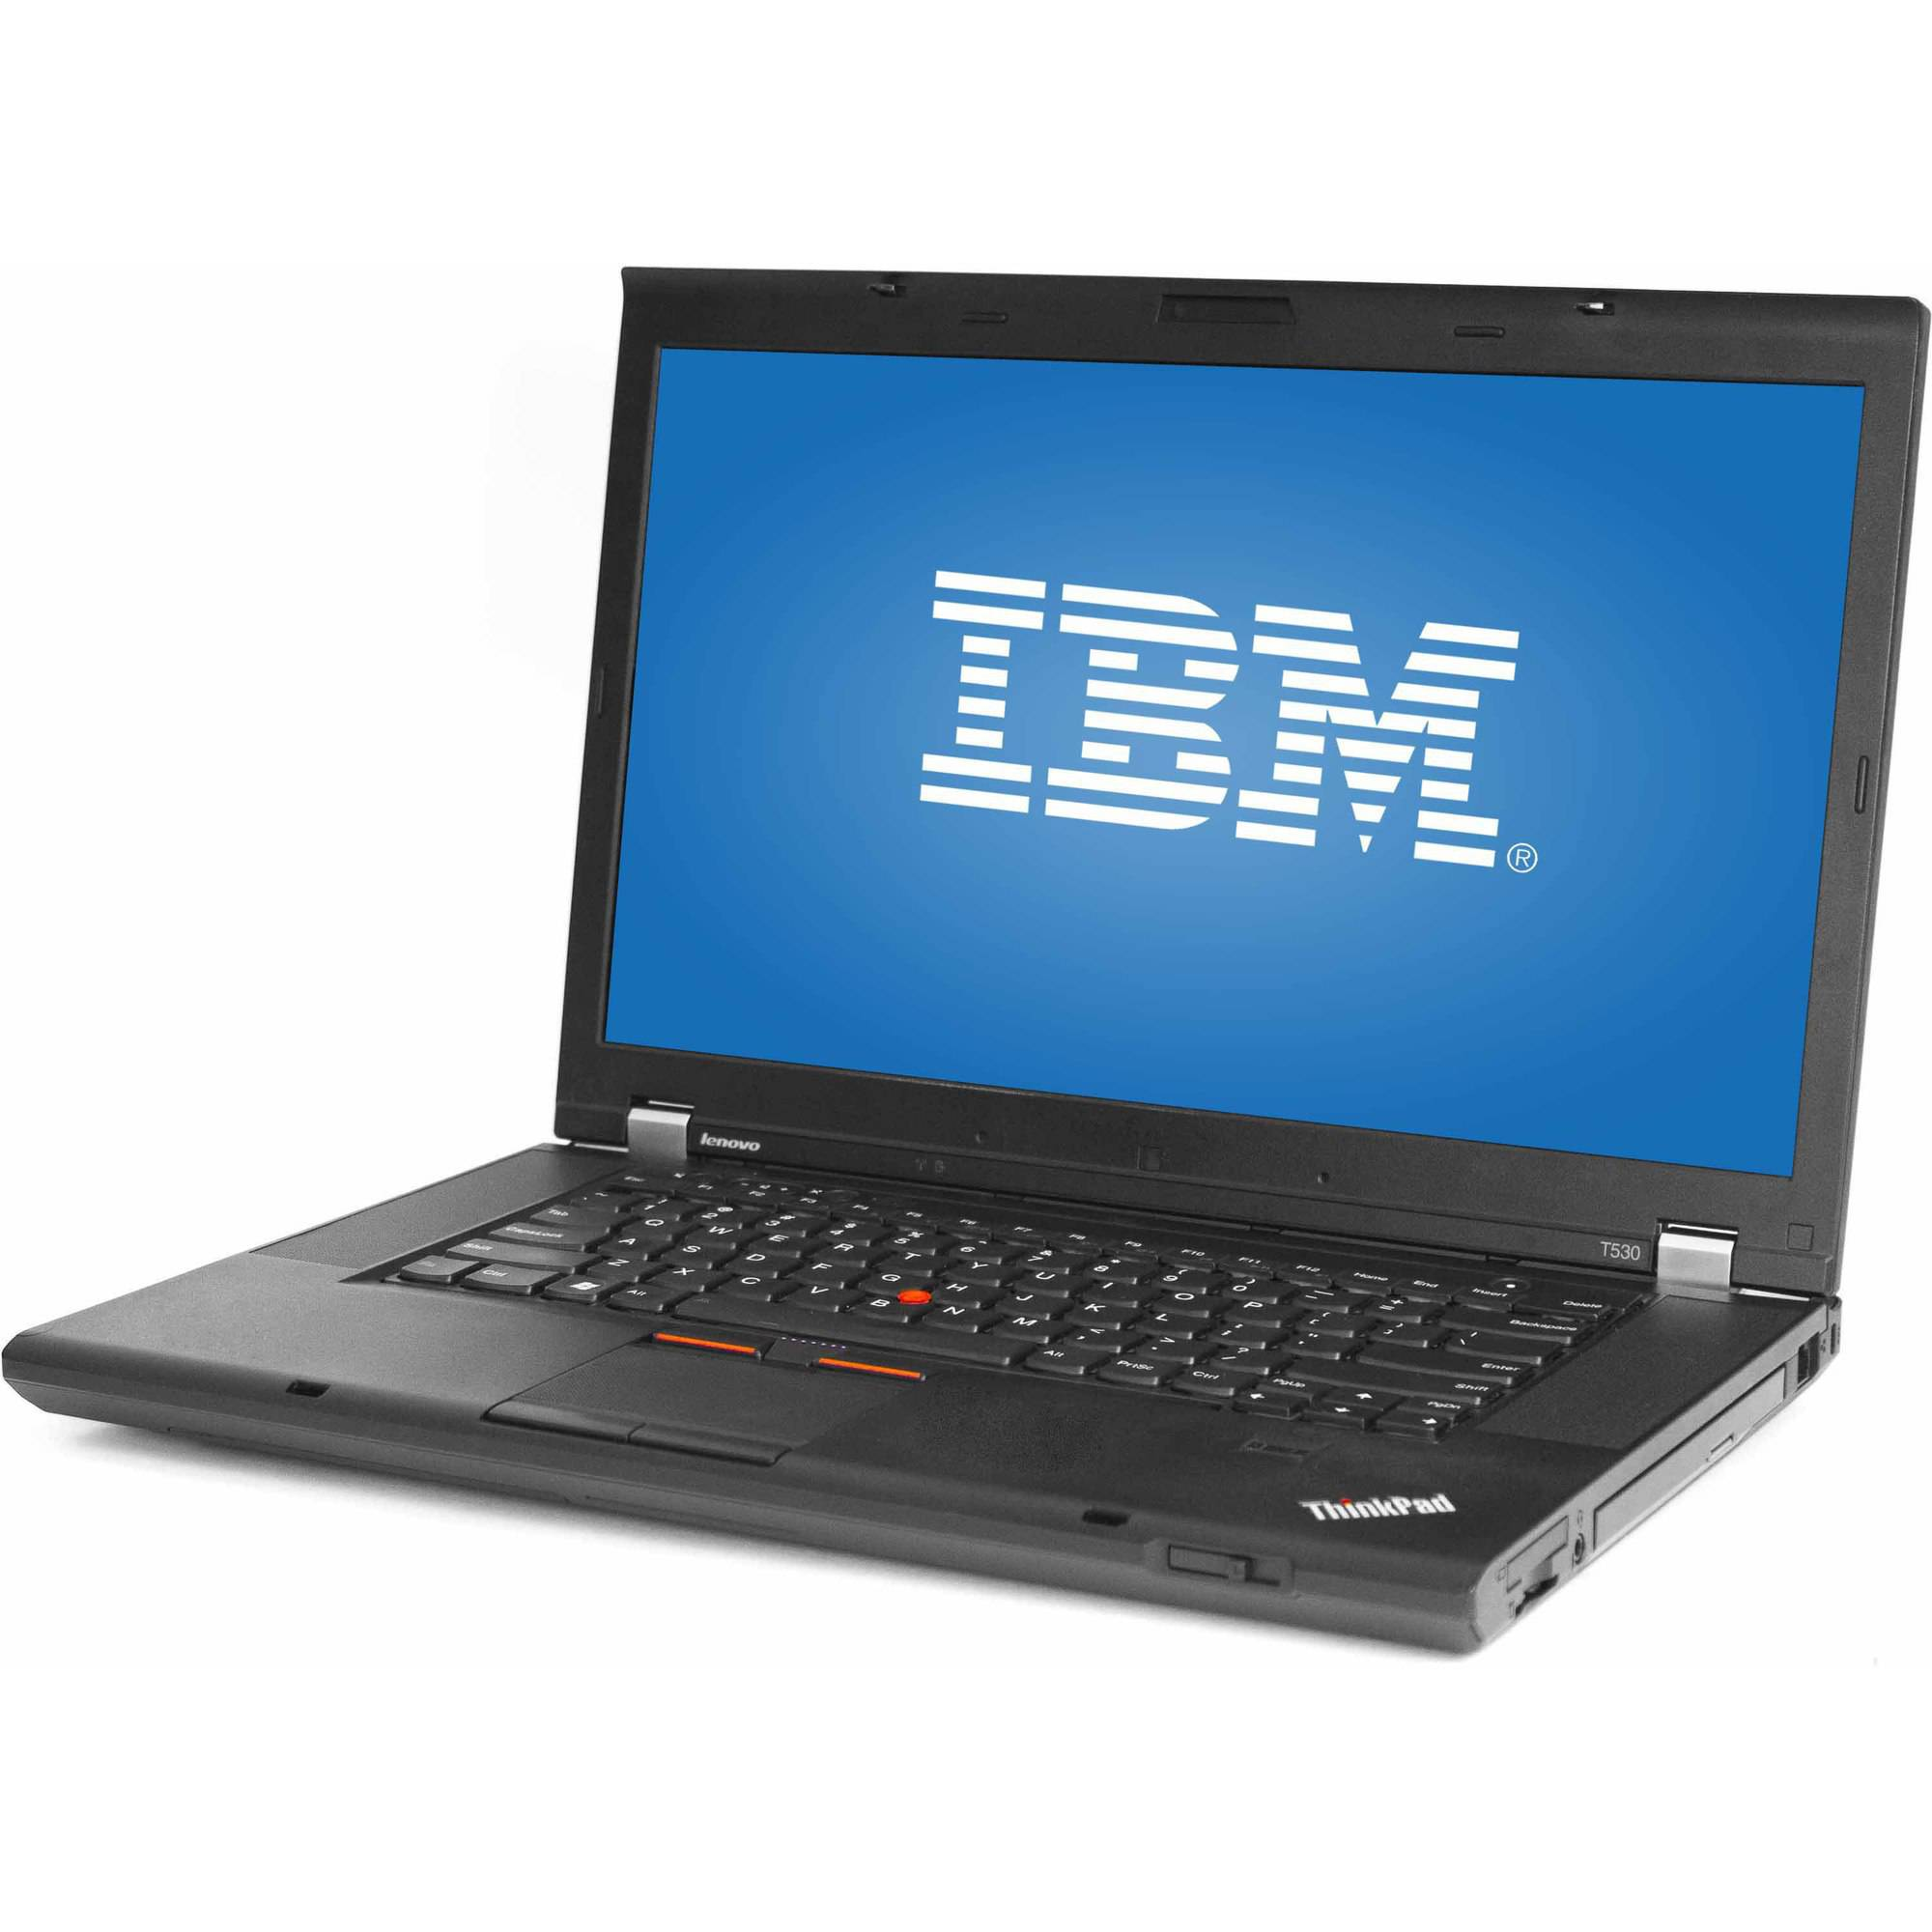 """Refurbished Lenovo 15.6"""" ThinkPad T530 Laptop PC with Intel Core i5-3320M Processor, 16GB Memory, 256GB Solid State Drive and Windows 7 Professional"""